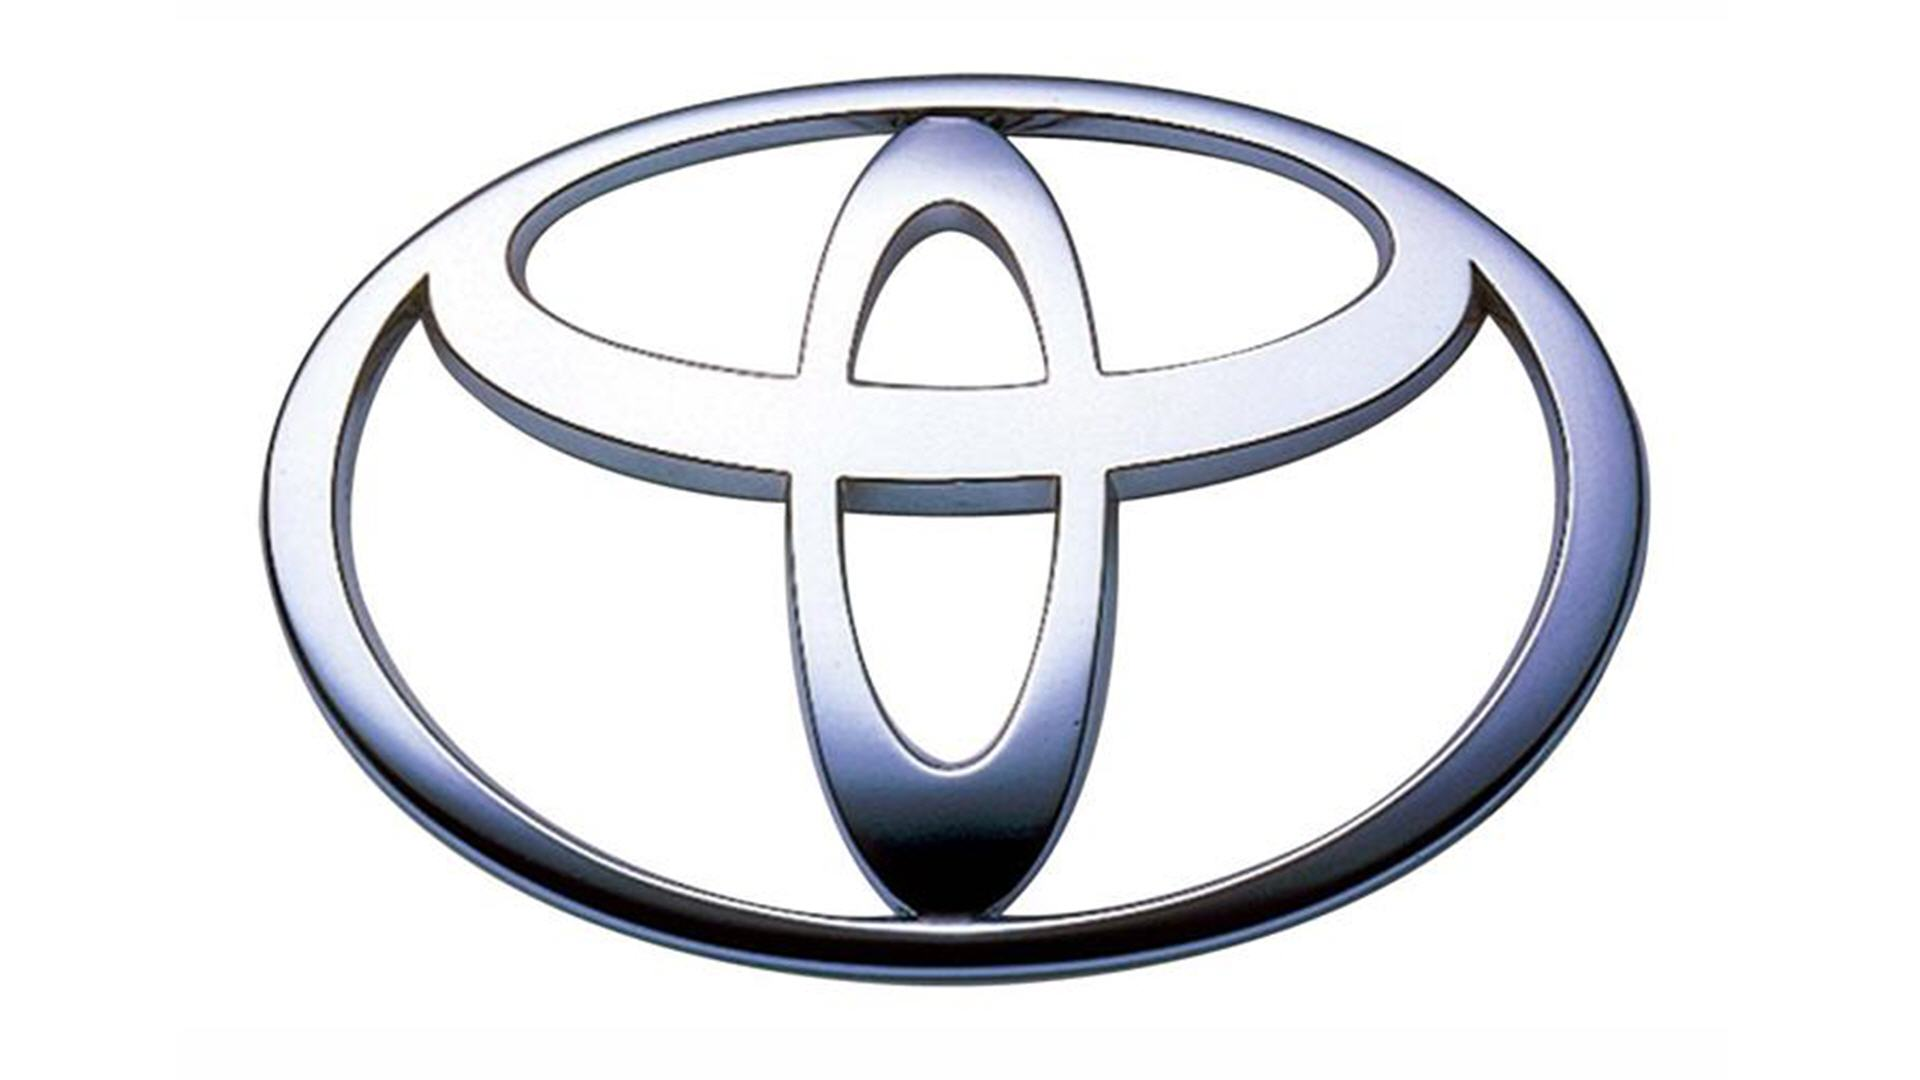 toyota logo hd wallpaper   Background Wallpapers for your 1920x1080